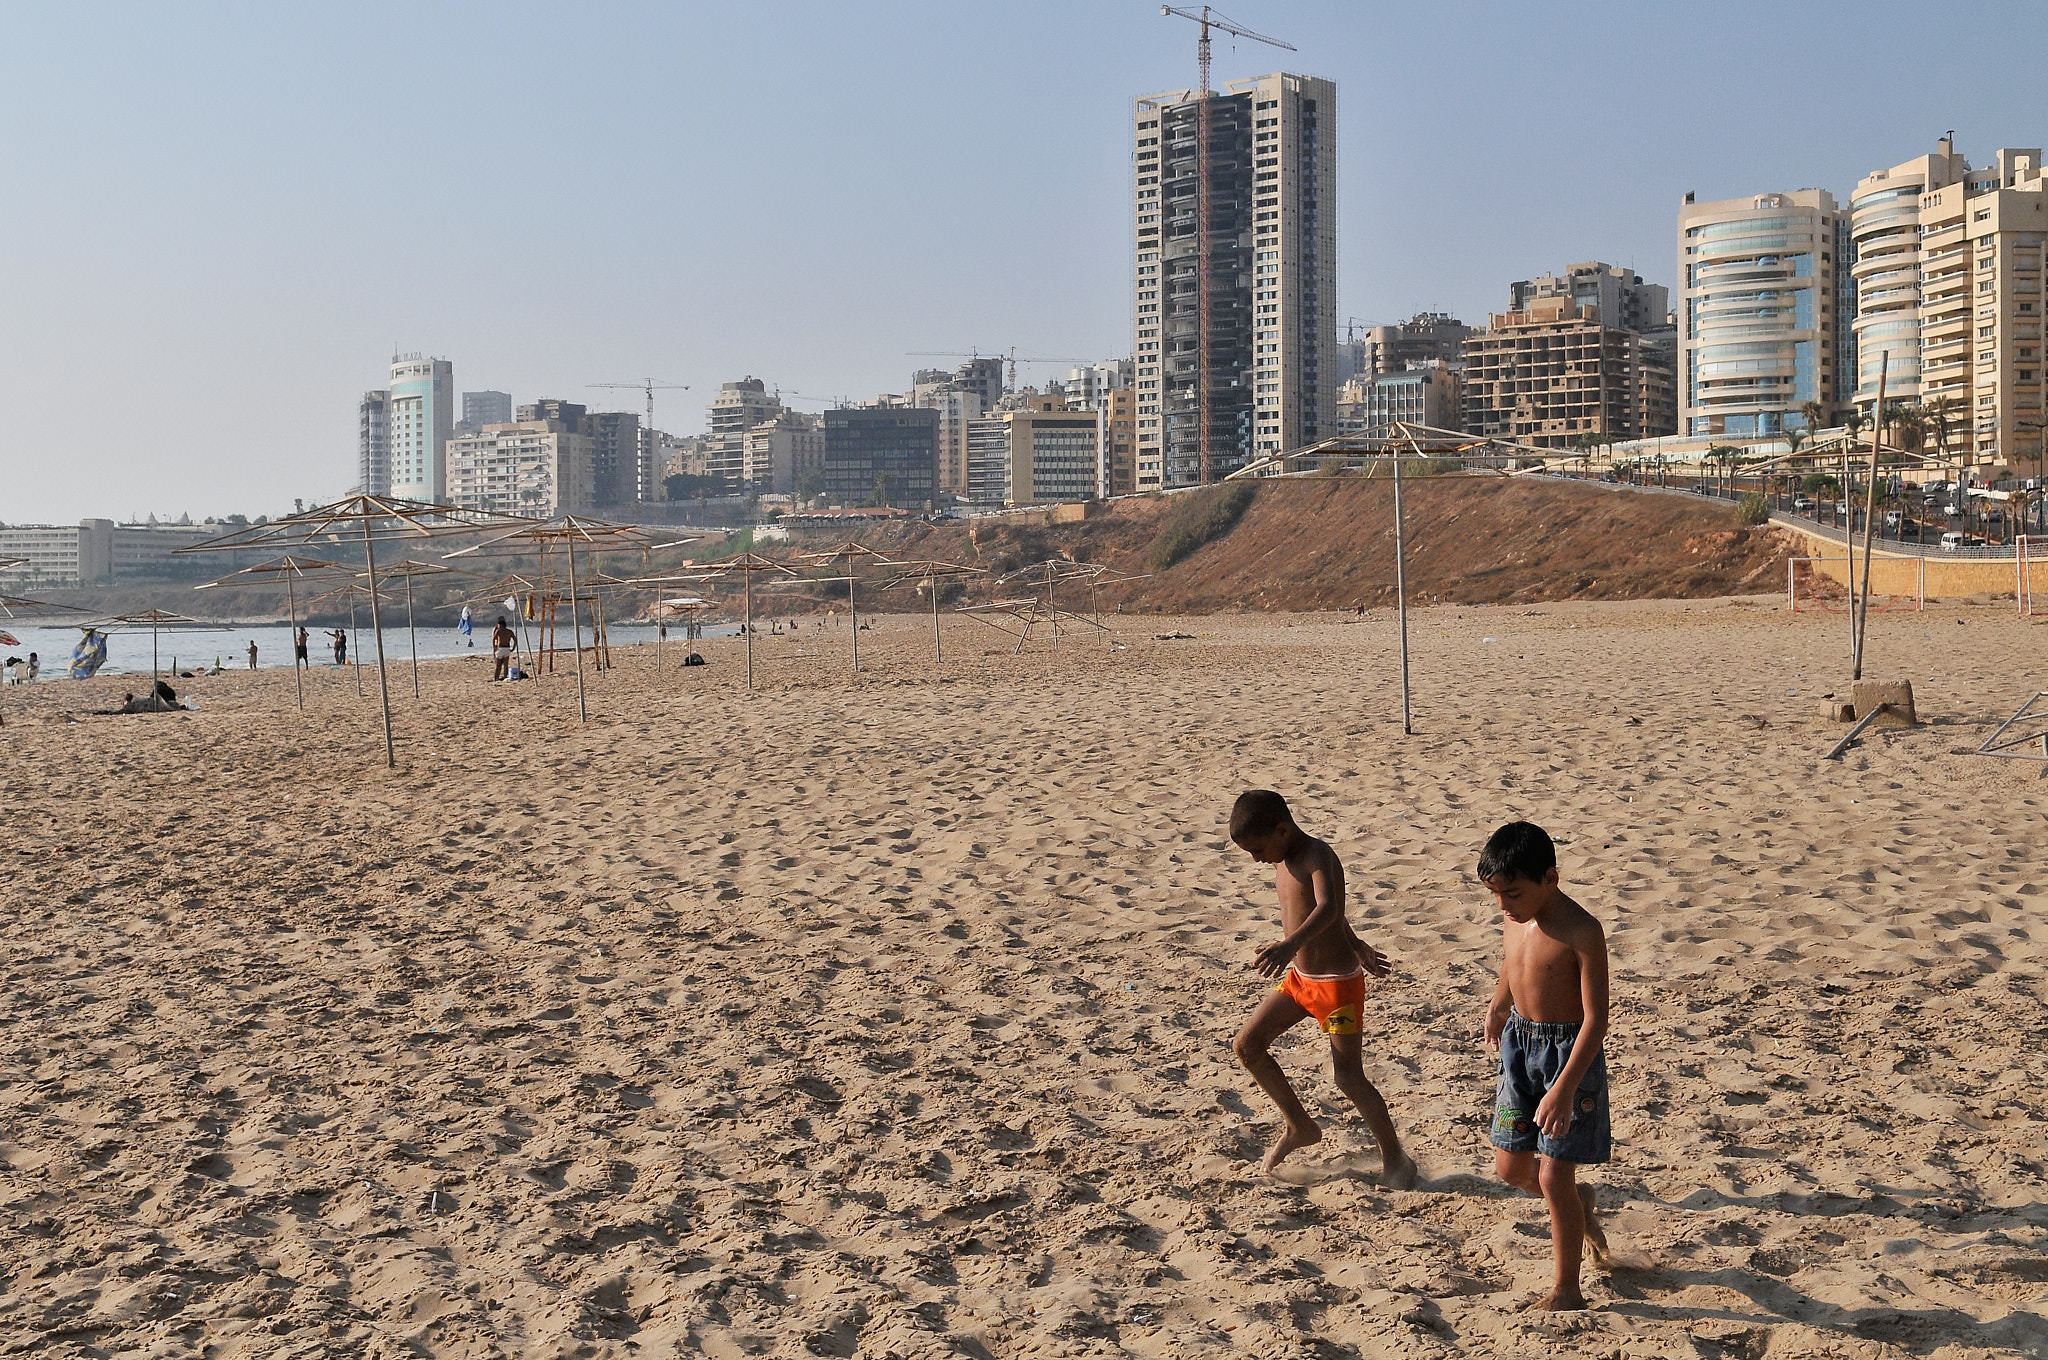 Two boys enjoys a summer afternoon on Ramlit El Bayda's neglected beach, Beirut's only remaining free public beach. Beirut, 2009.